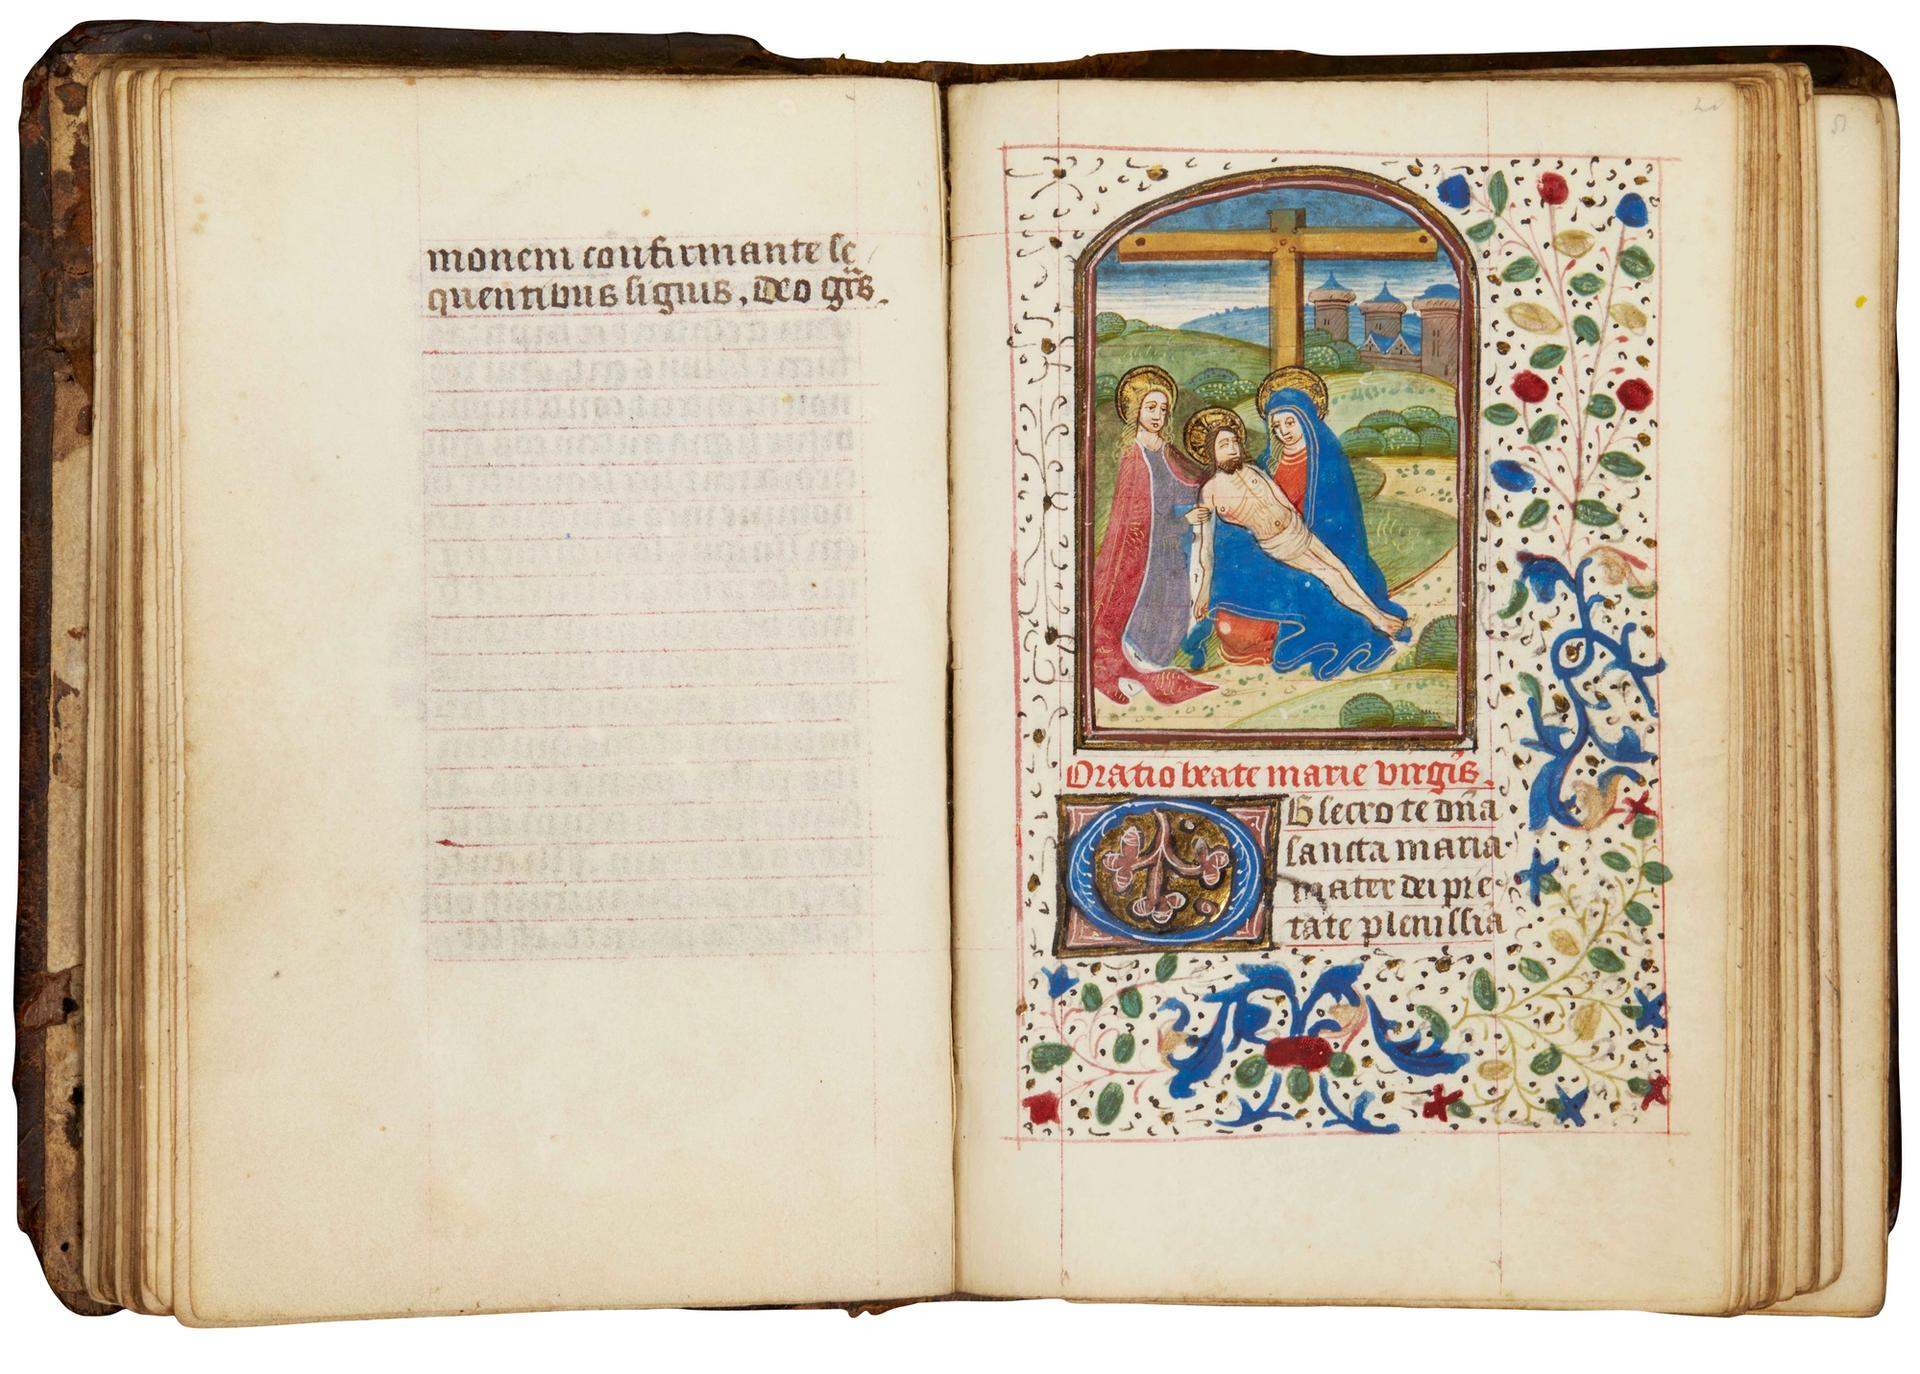 The 600 volumes includes 11 valuable medieval manuscripts © Bonn University and State Library